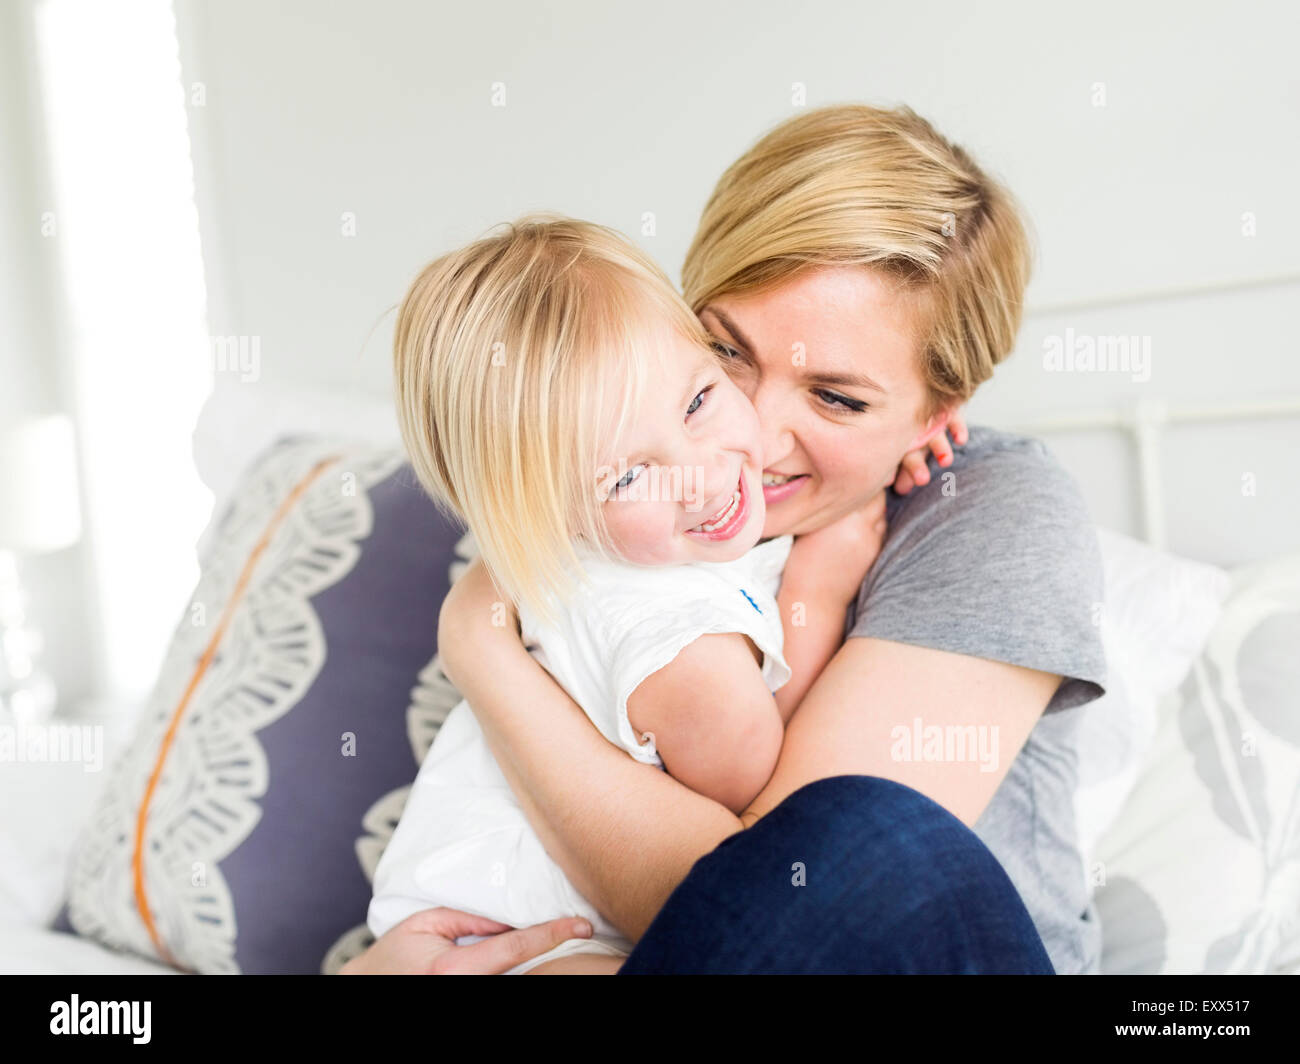 Woman hugging daughter (2-3) in bedroom - Stock Image